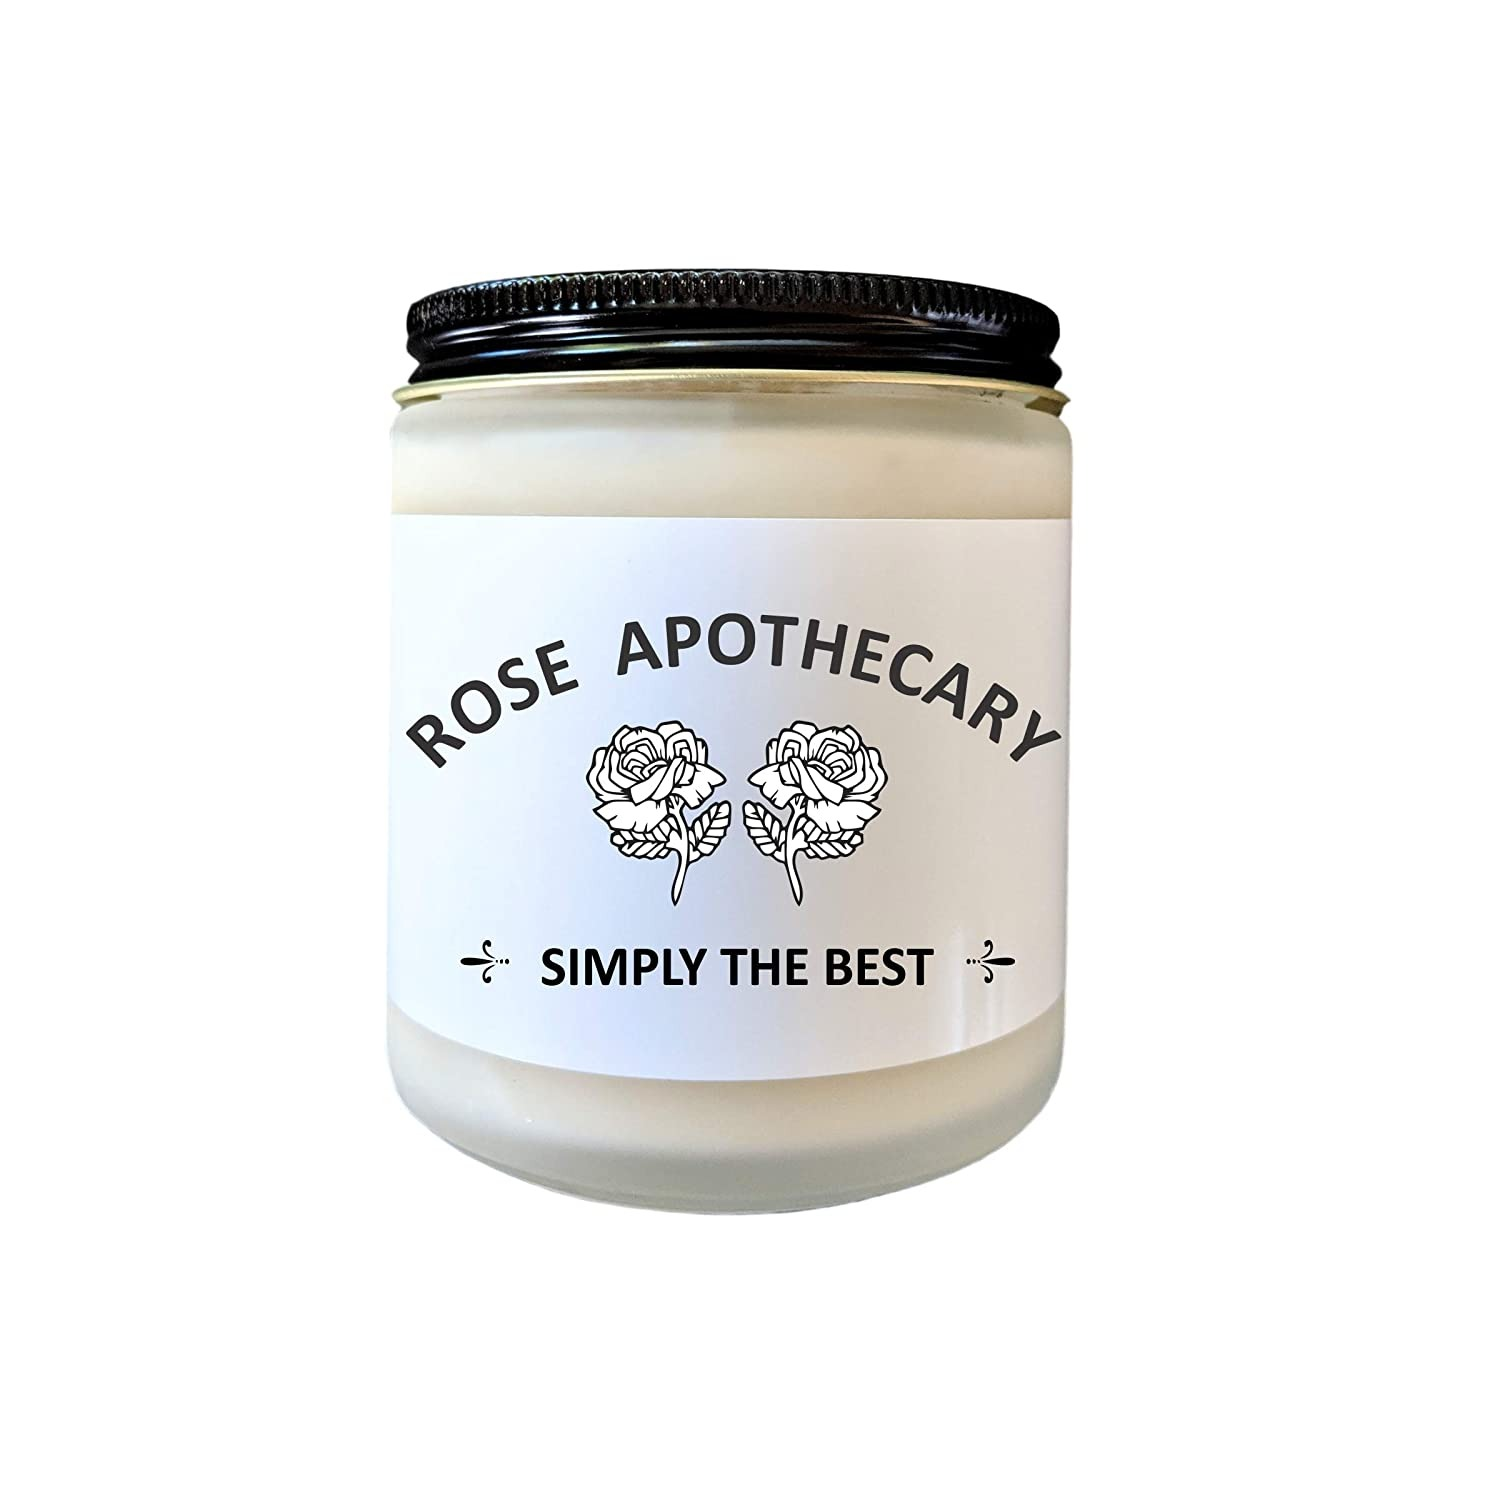 Rose-Apothecary-Schitts-Creek-Gift-Scented-Candle